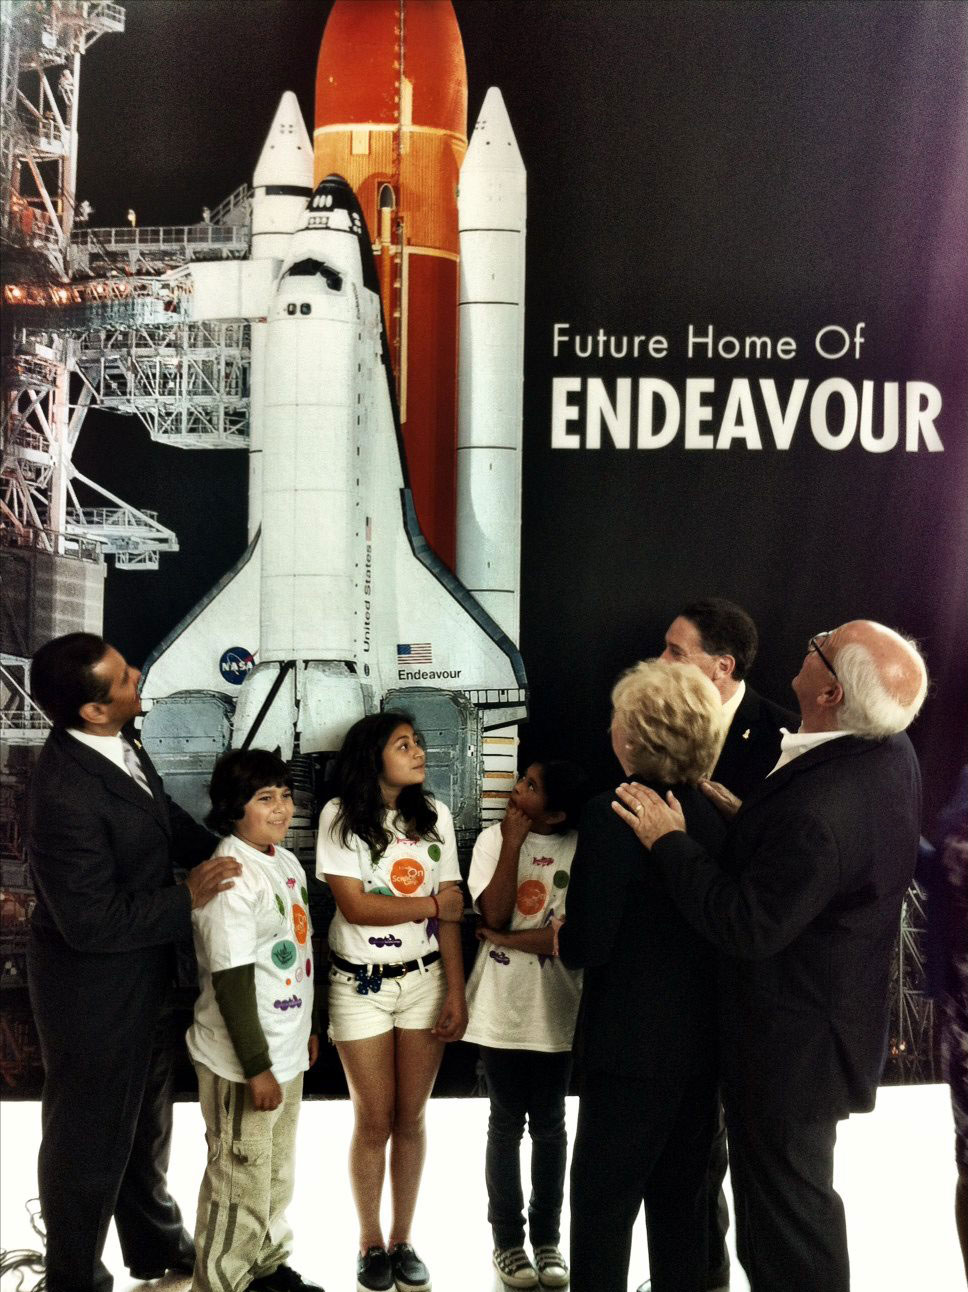 California Science Center Names New Wing for Space Shuttle Endeavour